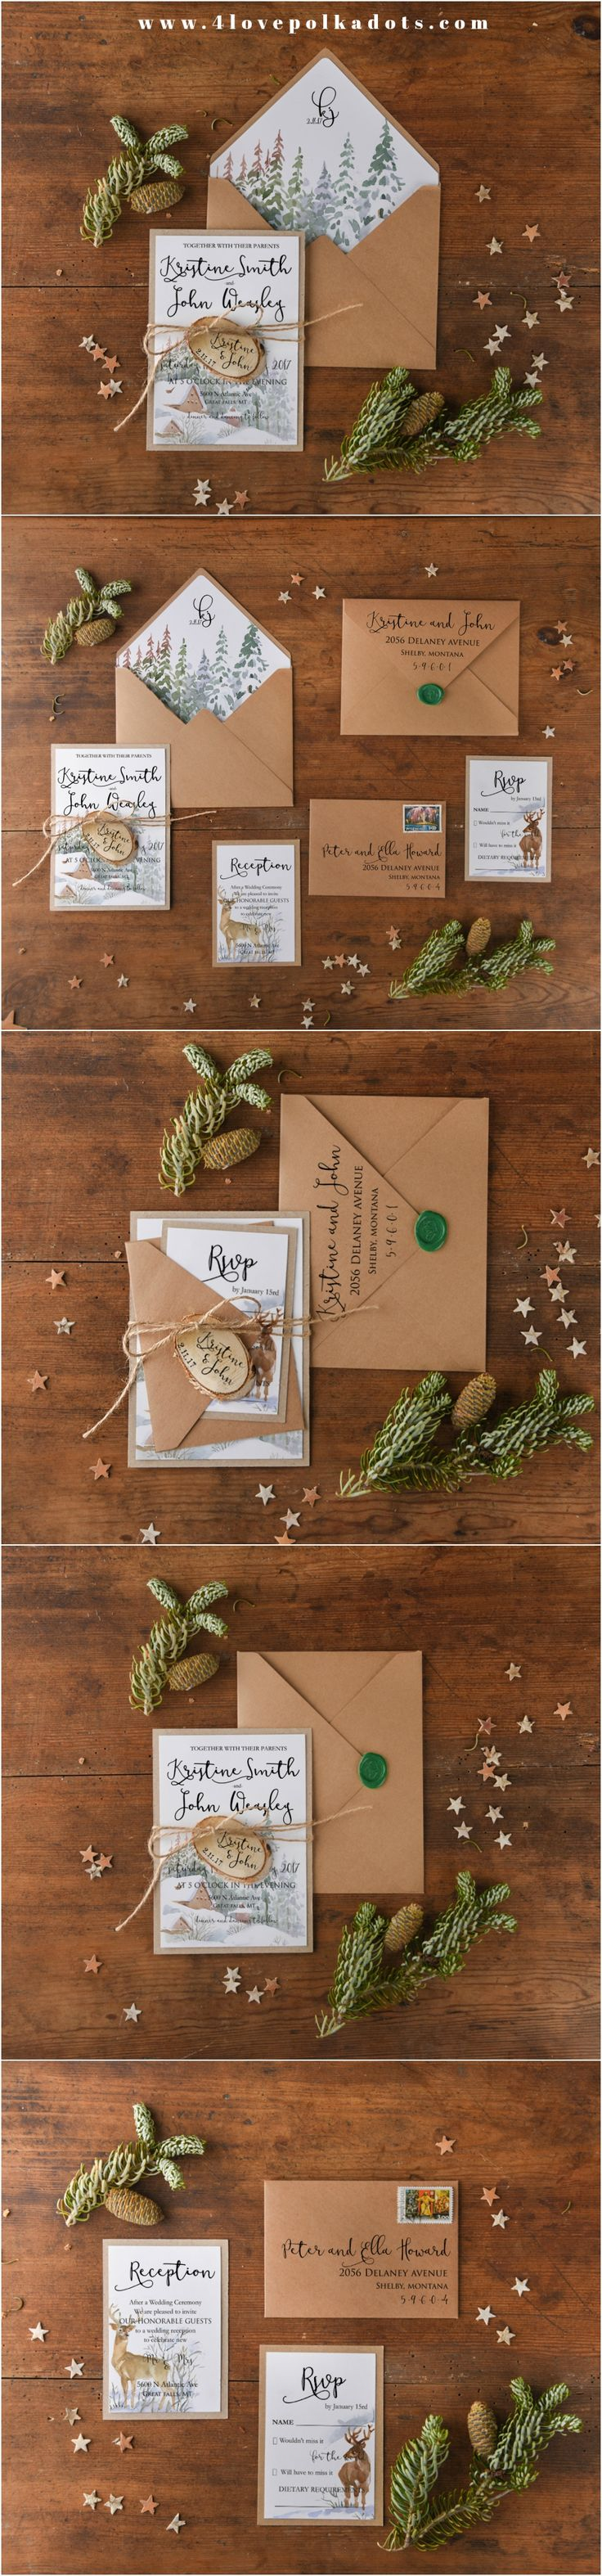 Rustic Kraft Paper Winter Wedding Invitations with wooden tag #rustic #whimsical #winterwedding #romanticwedding